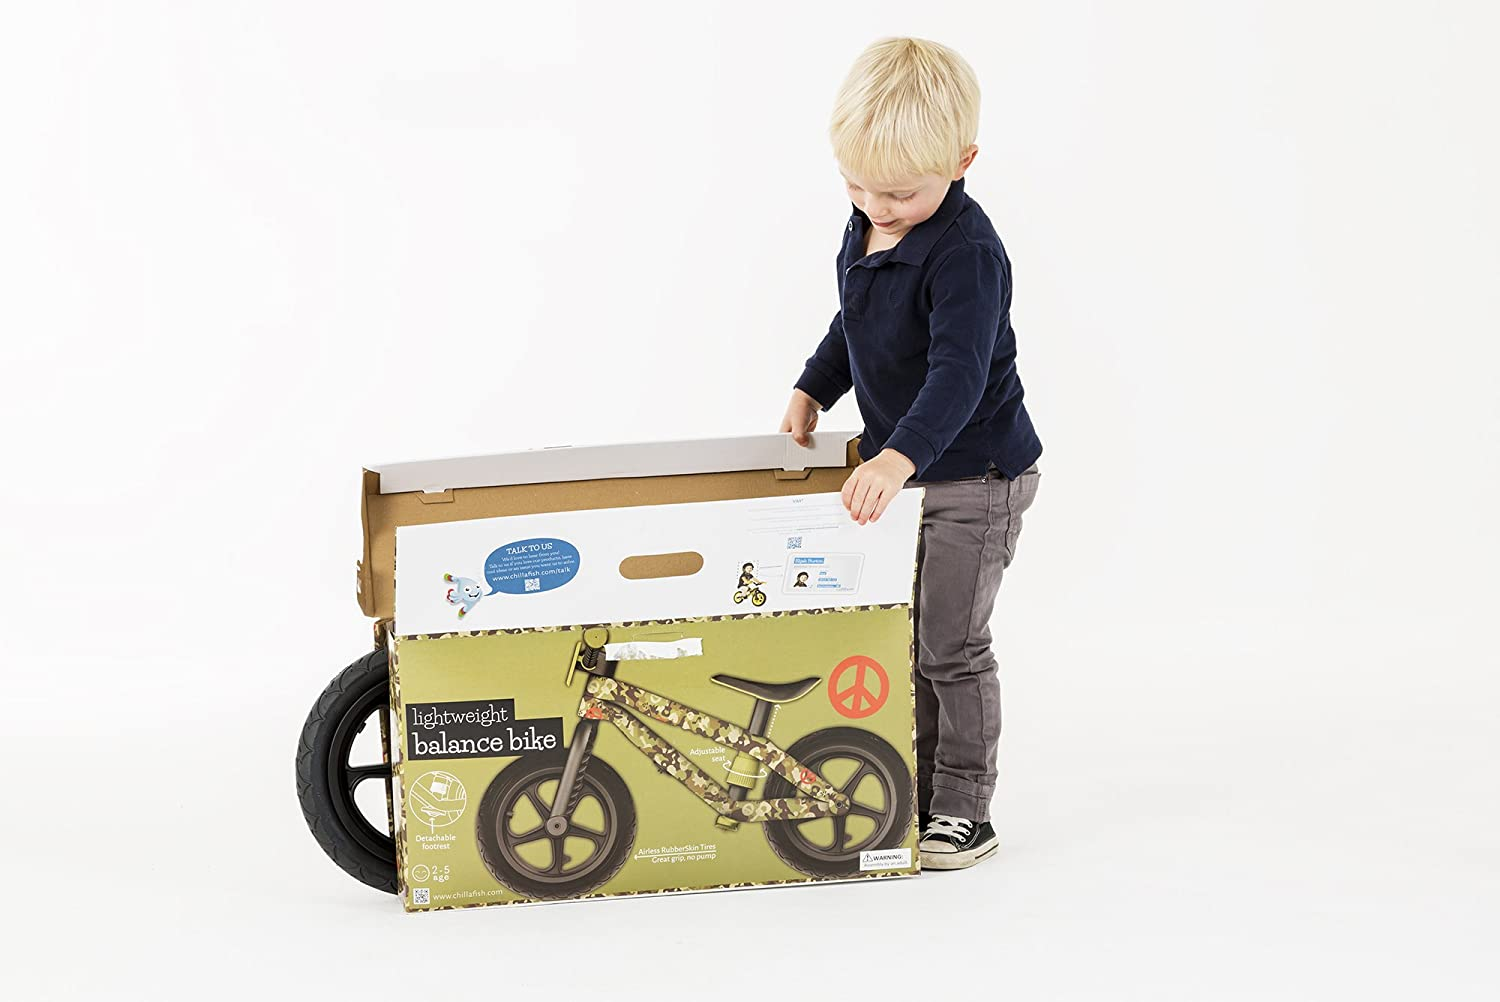 Chillafish BMXie-RS: BMX Balance Bike with Airless Rubberskin Tires Motion of The Ocean Blue The Chillafish Company NV CPMX01BLU-RS